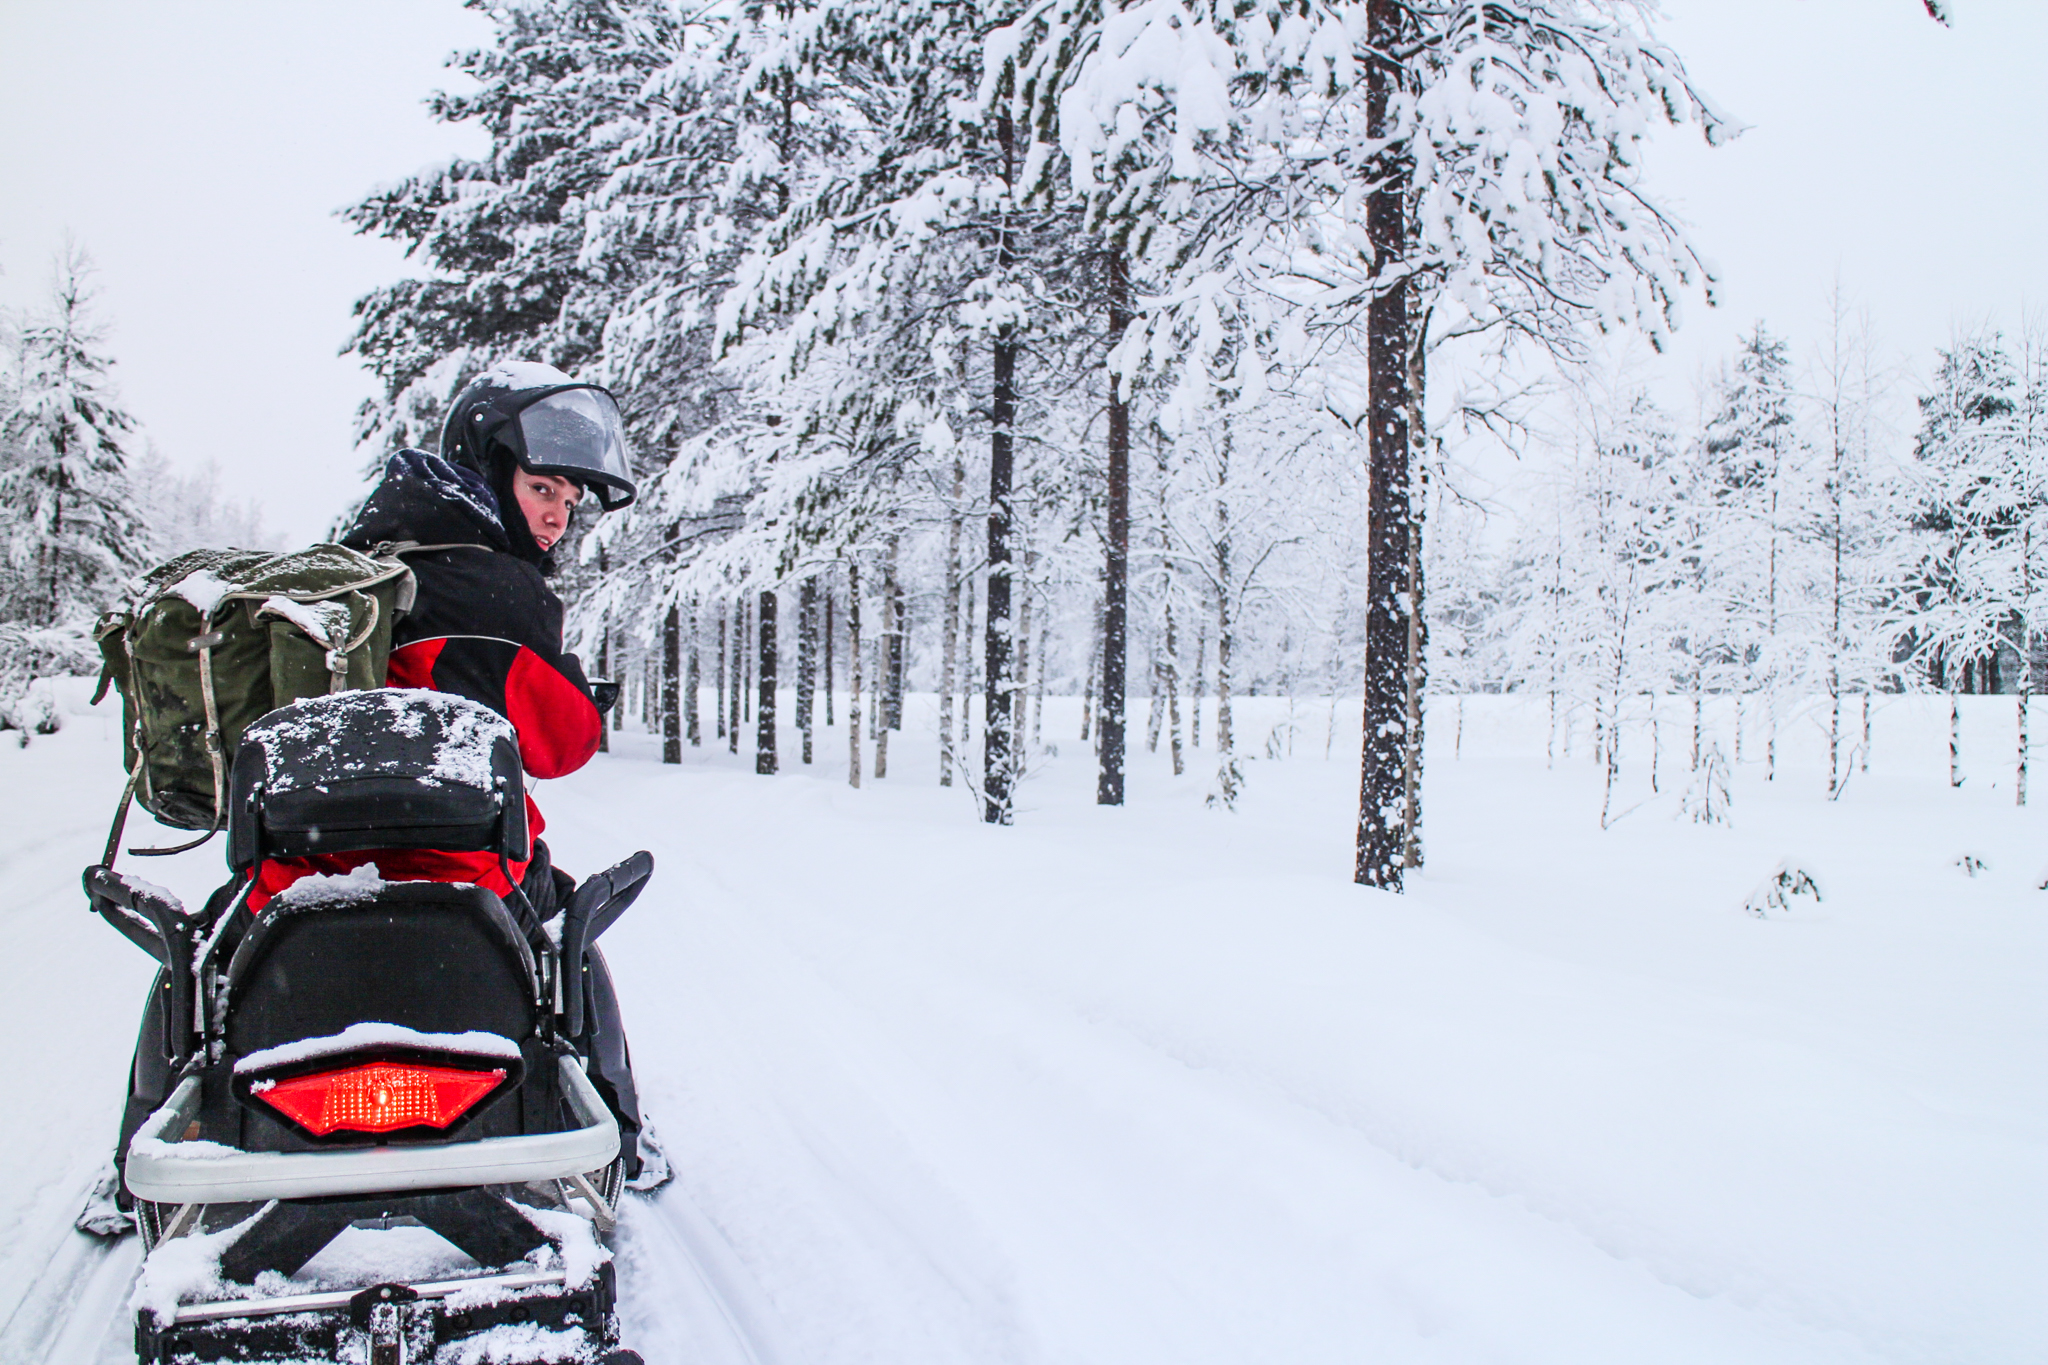 person on snowmobile in snowy forest